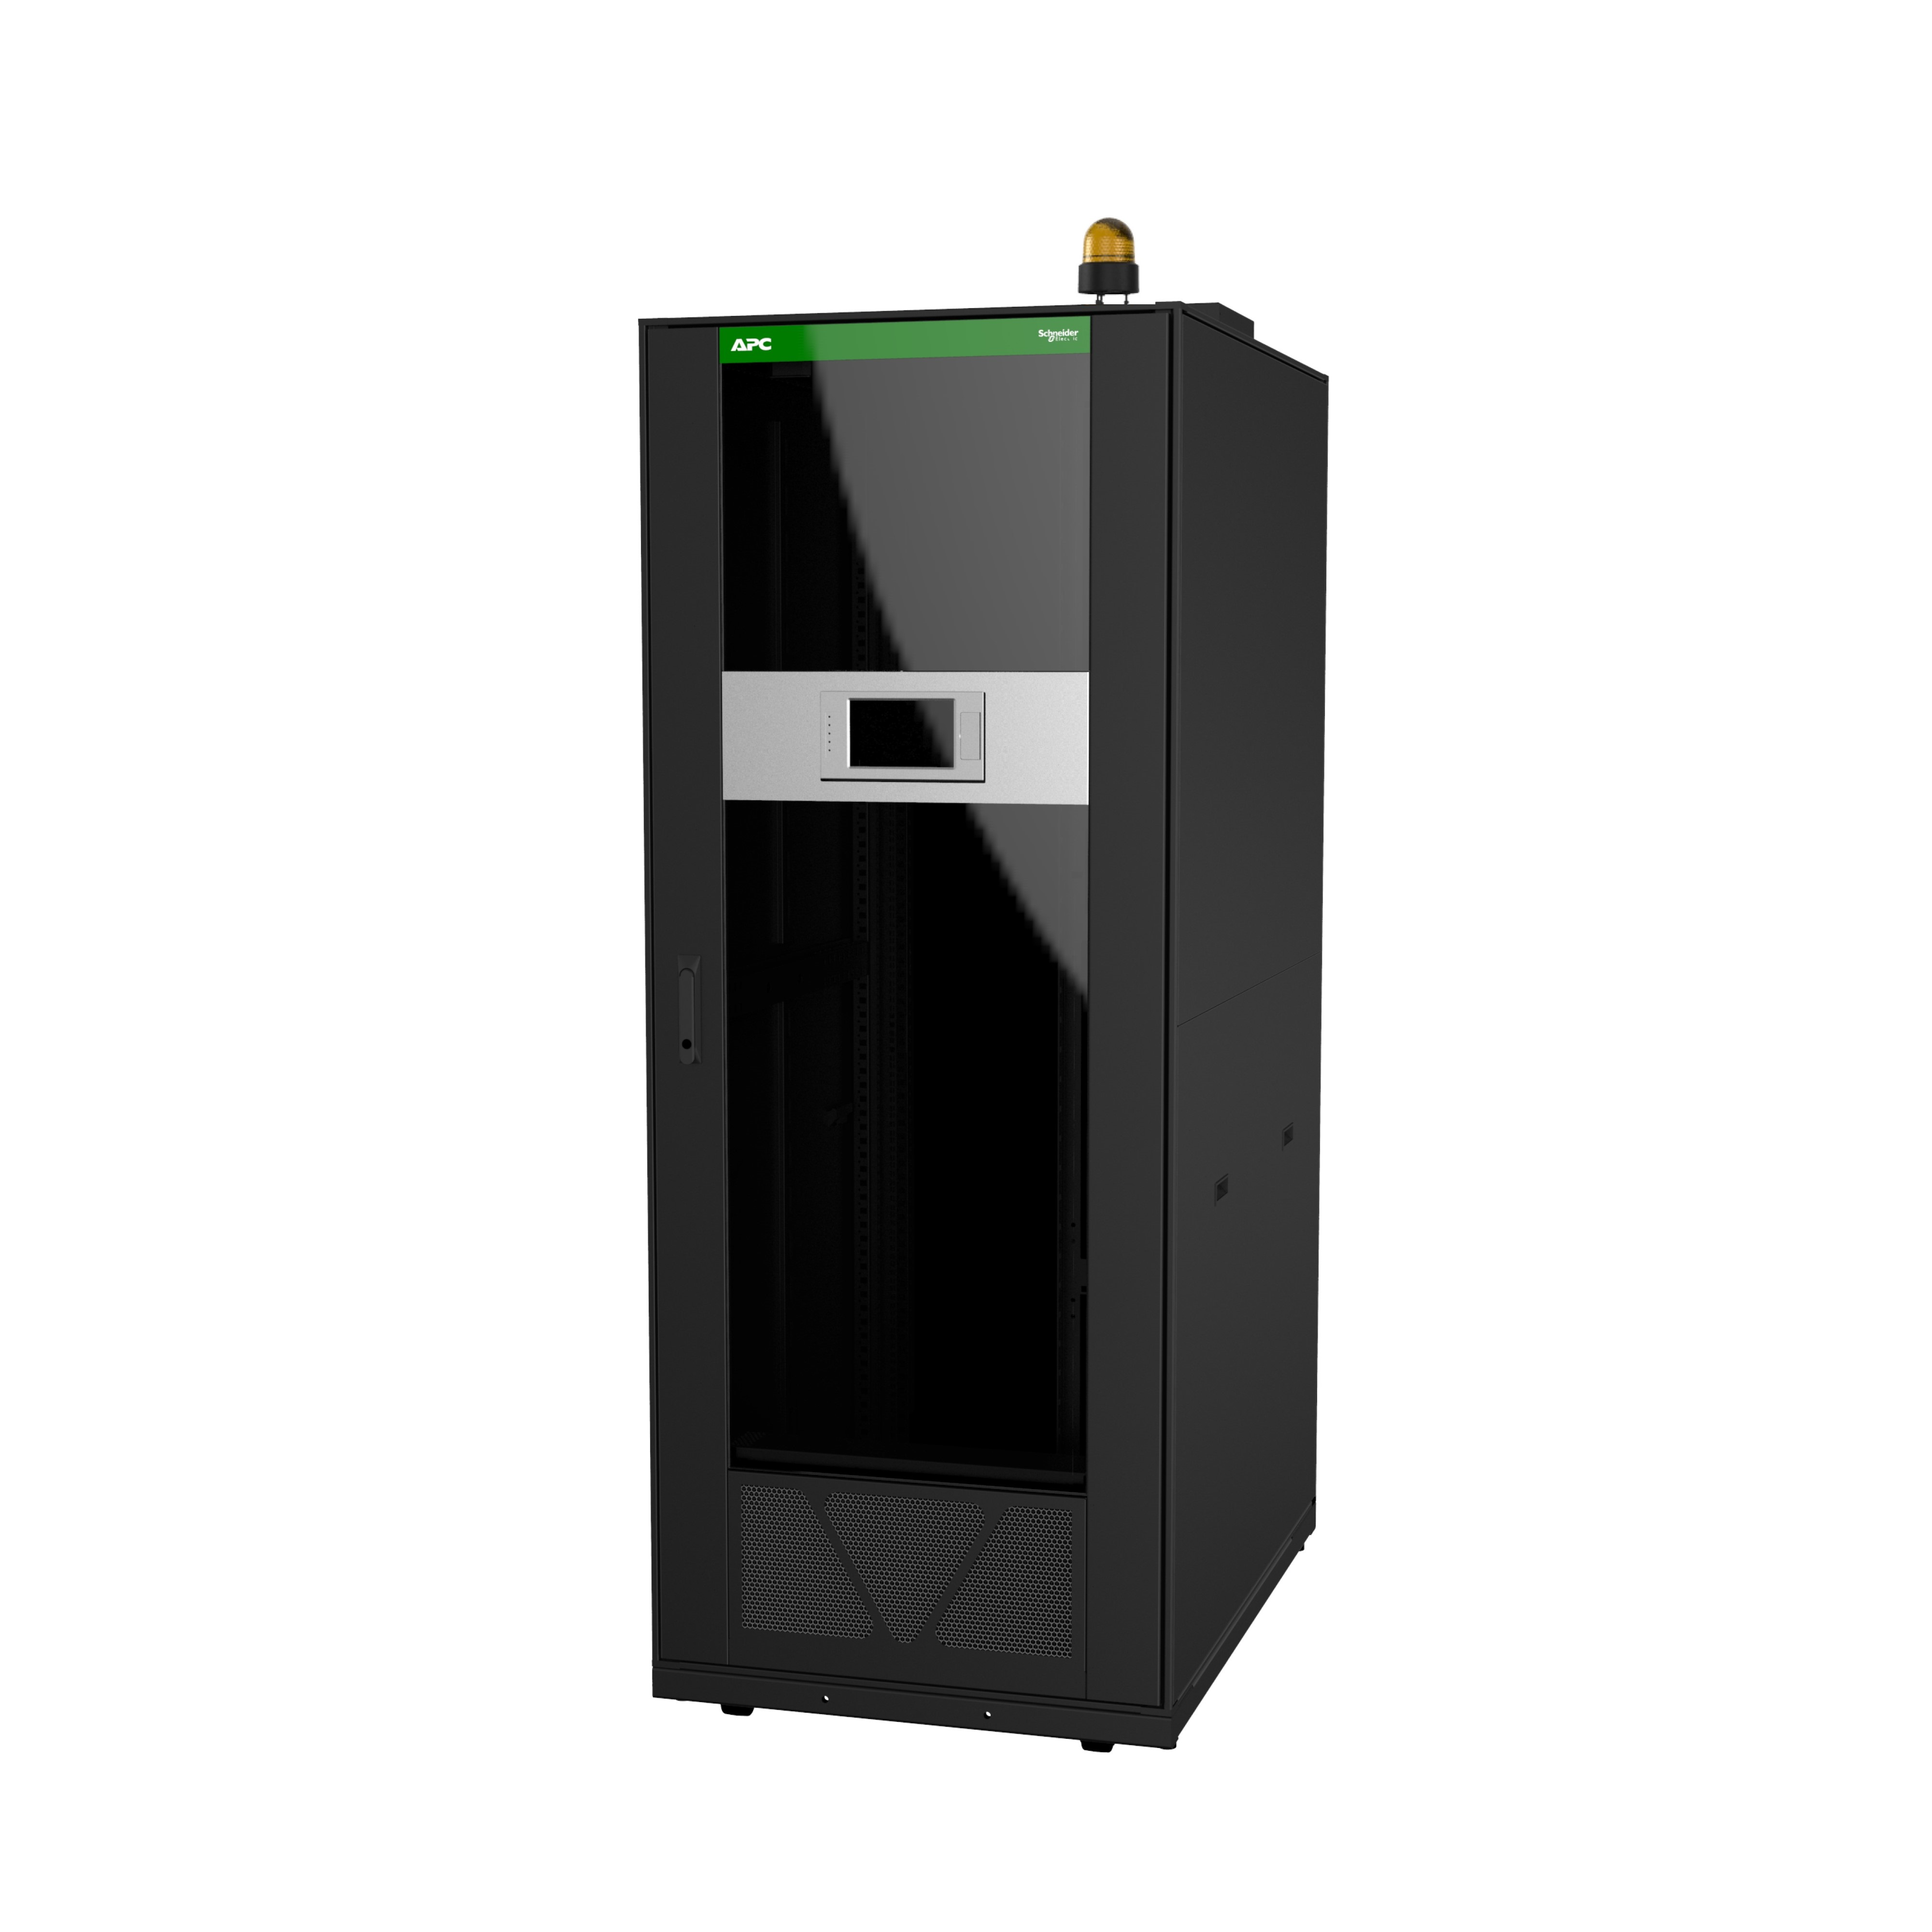 Schneider Electric launches new-age EcoStruxure 43U C-Series Micro Data Center to Enhance Safety, Protection and Efficiency at the Edge